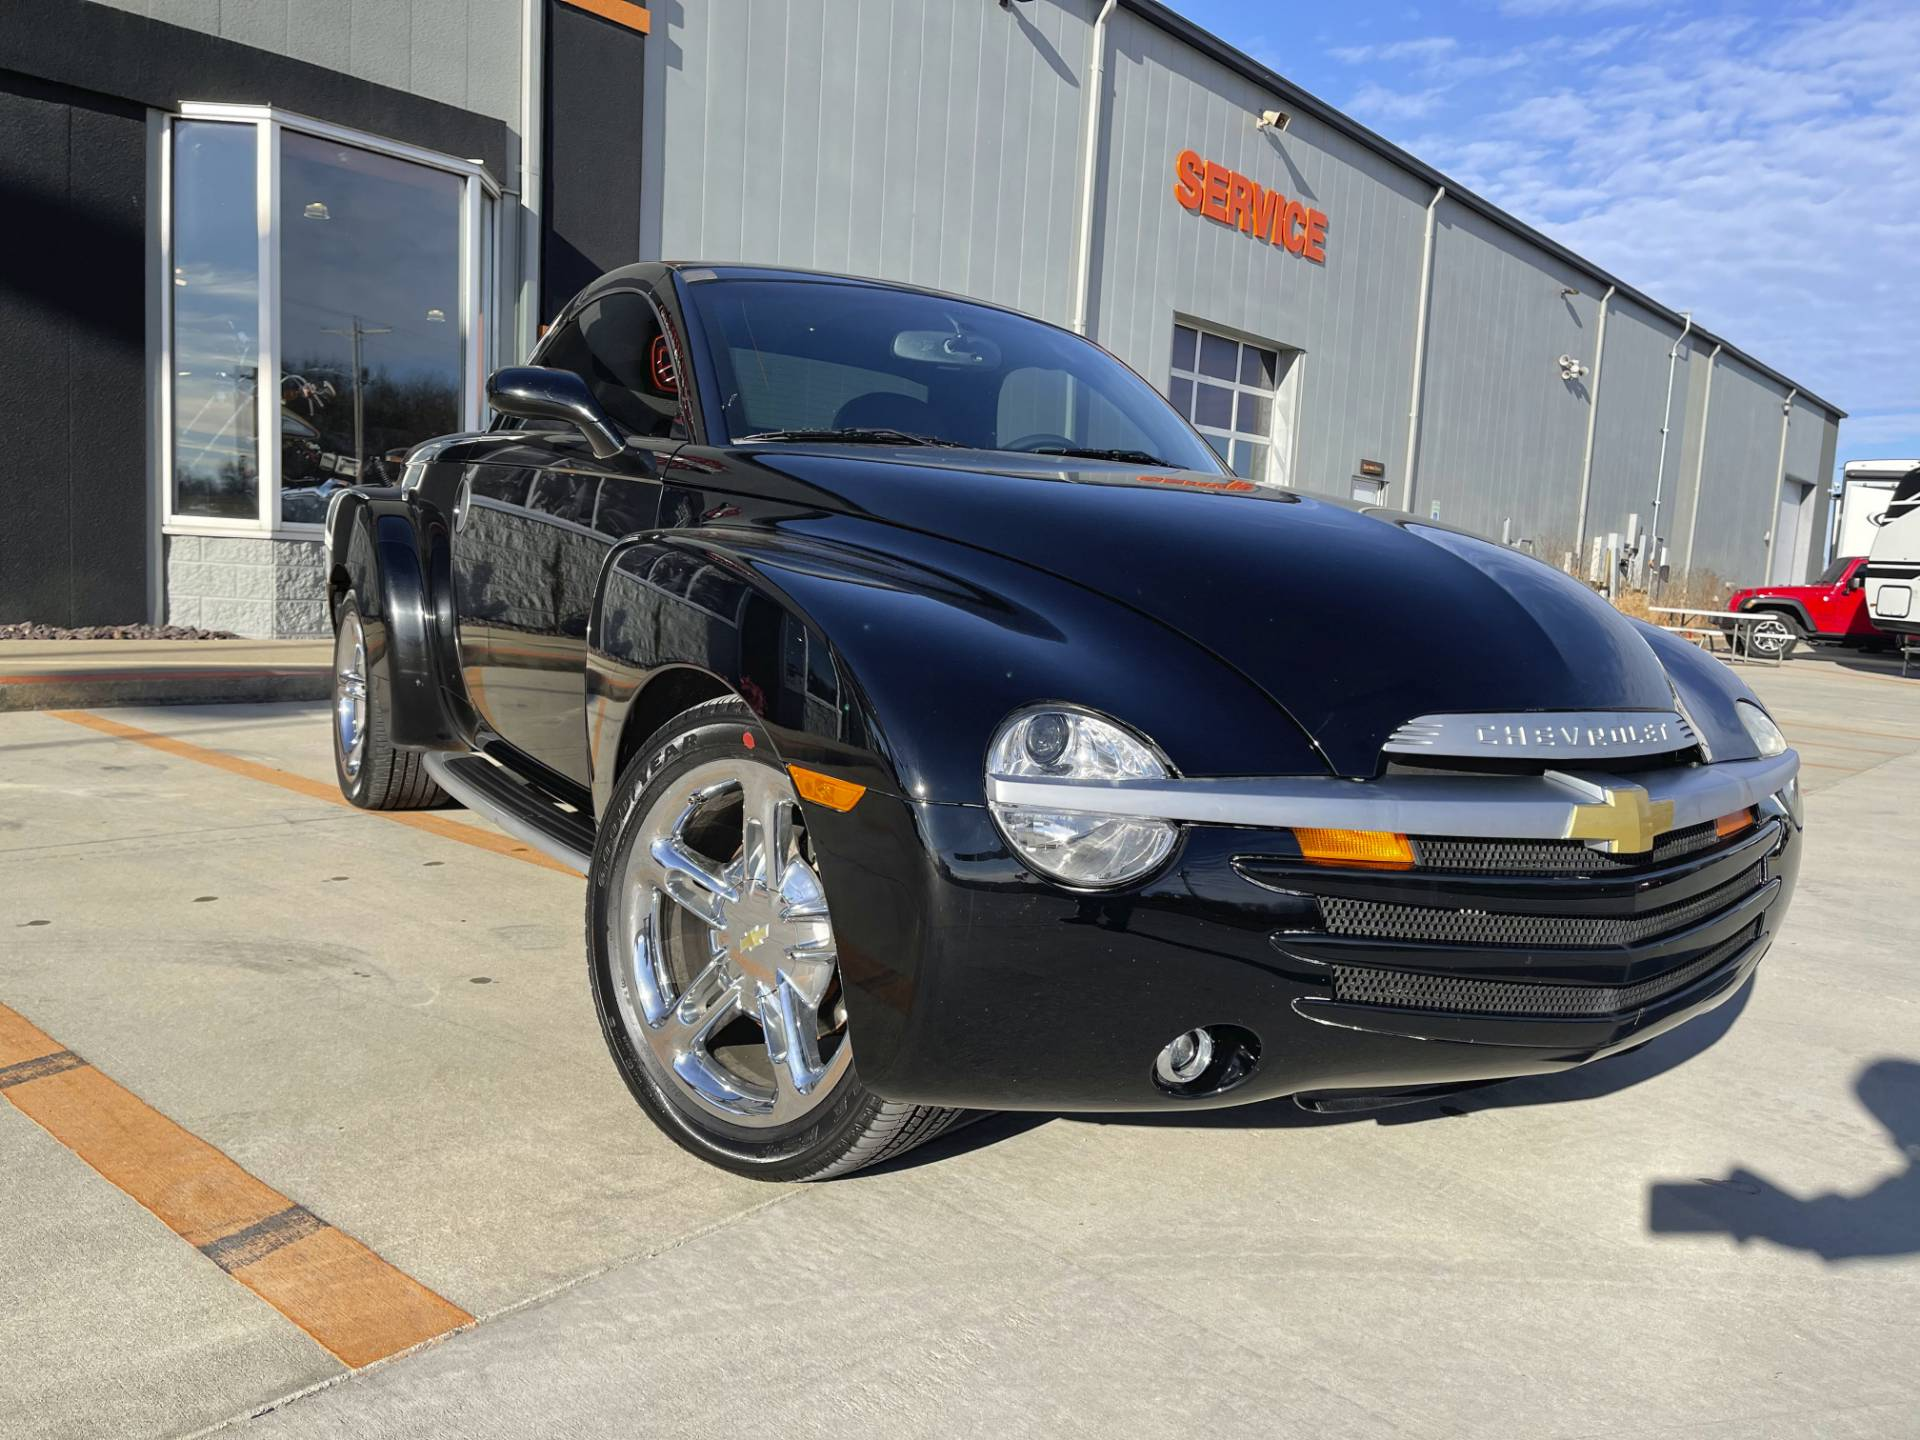 2005 Chevrolet SSR in Marion, Illinois - Photo 3